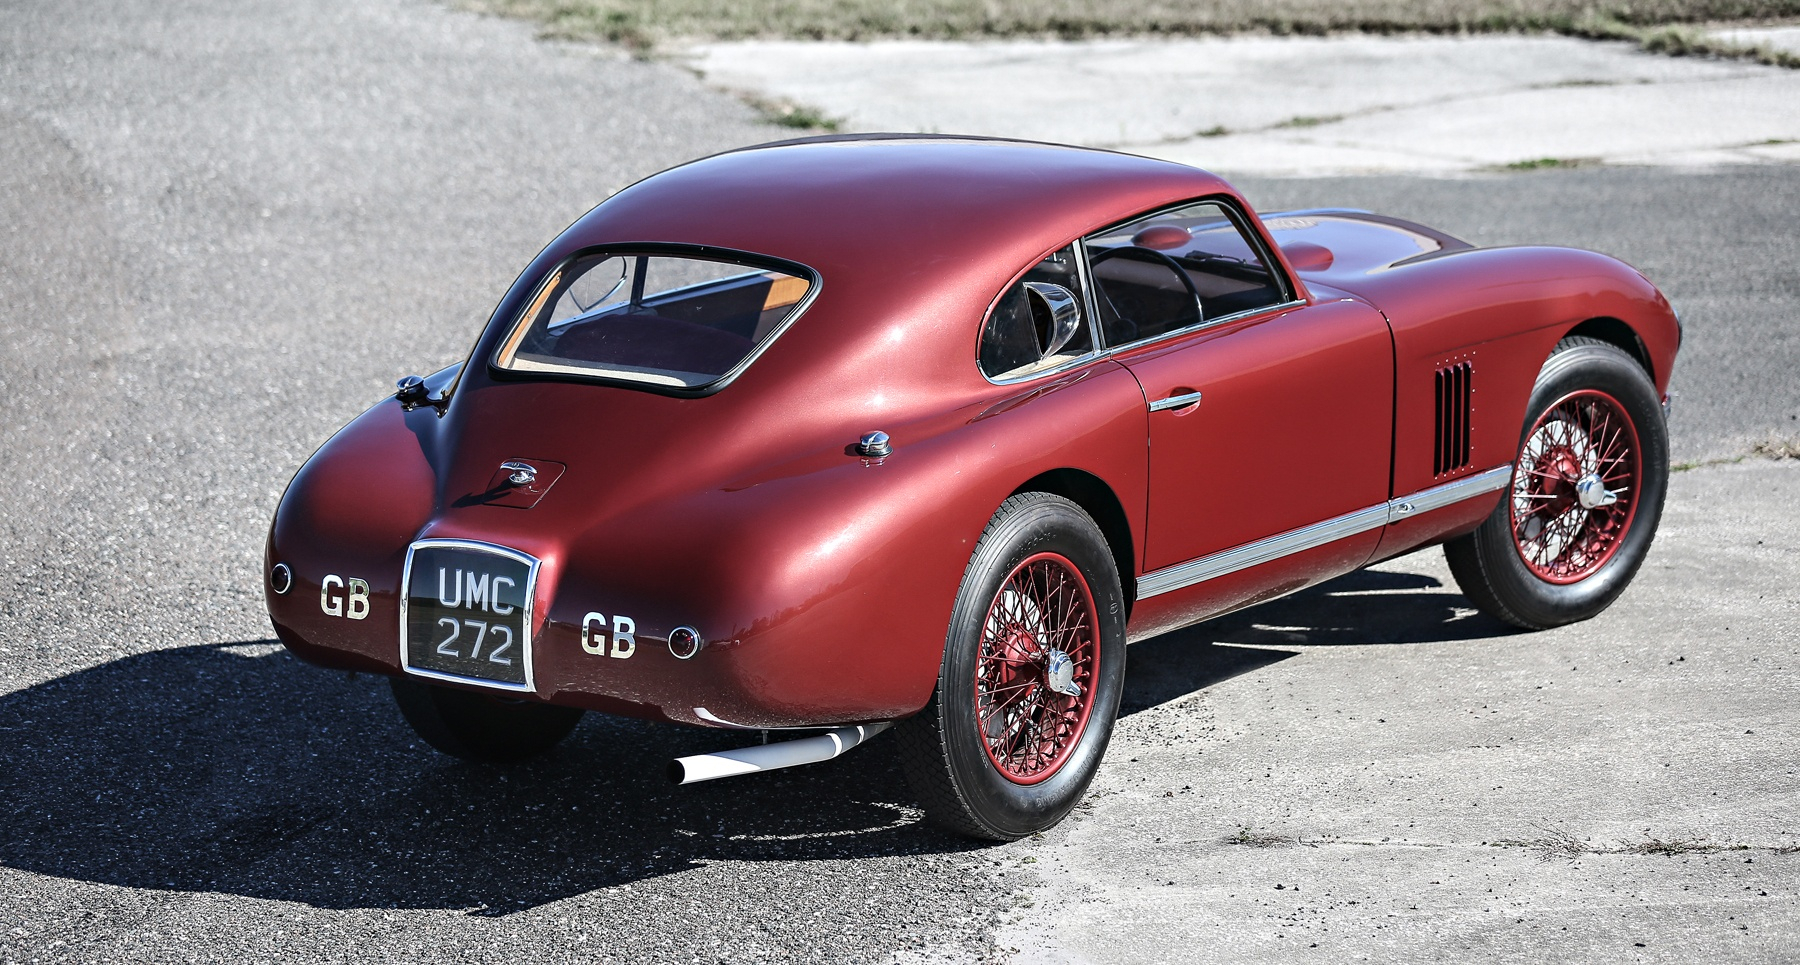 This Aston Martin Prototype Is The Genesis Of The Legendary with Db Models